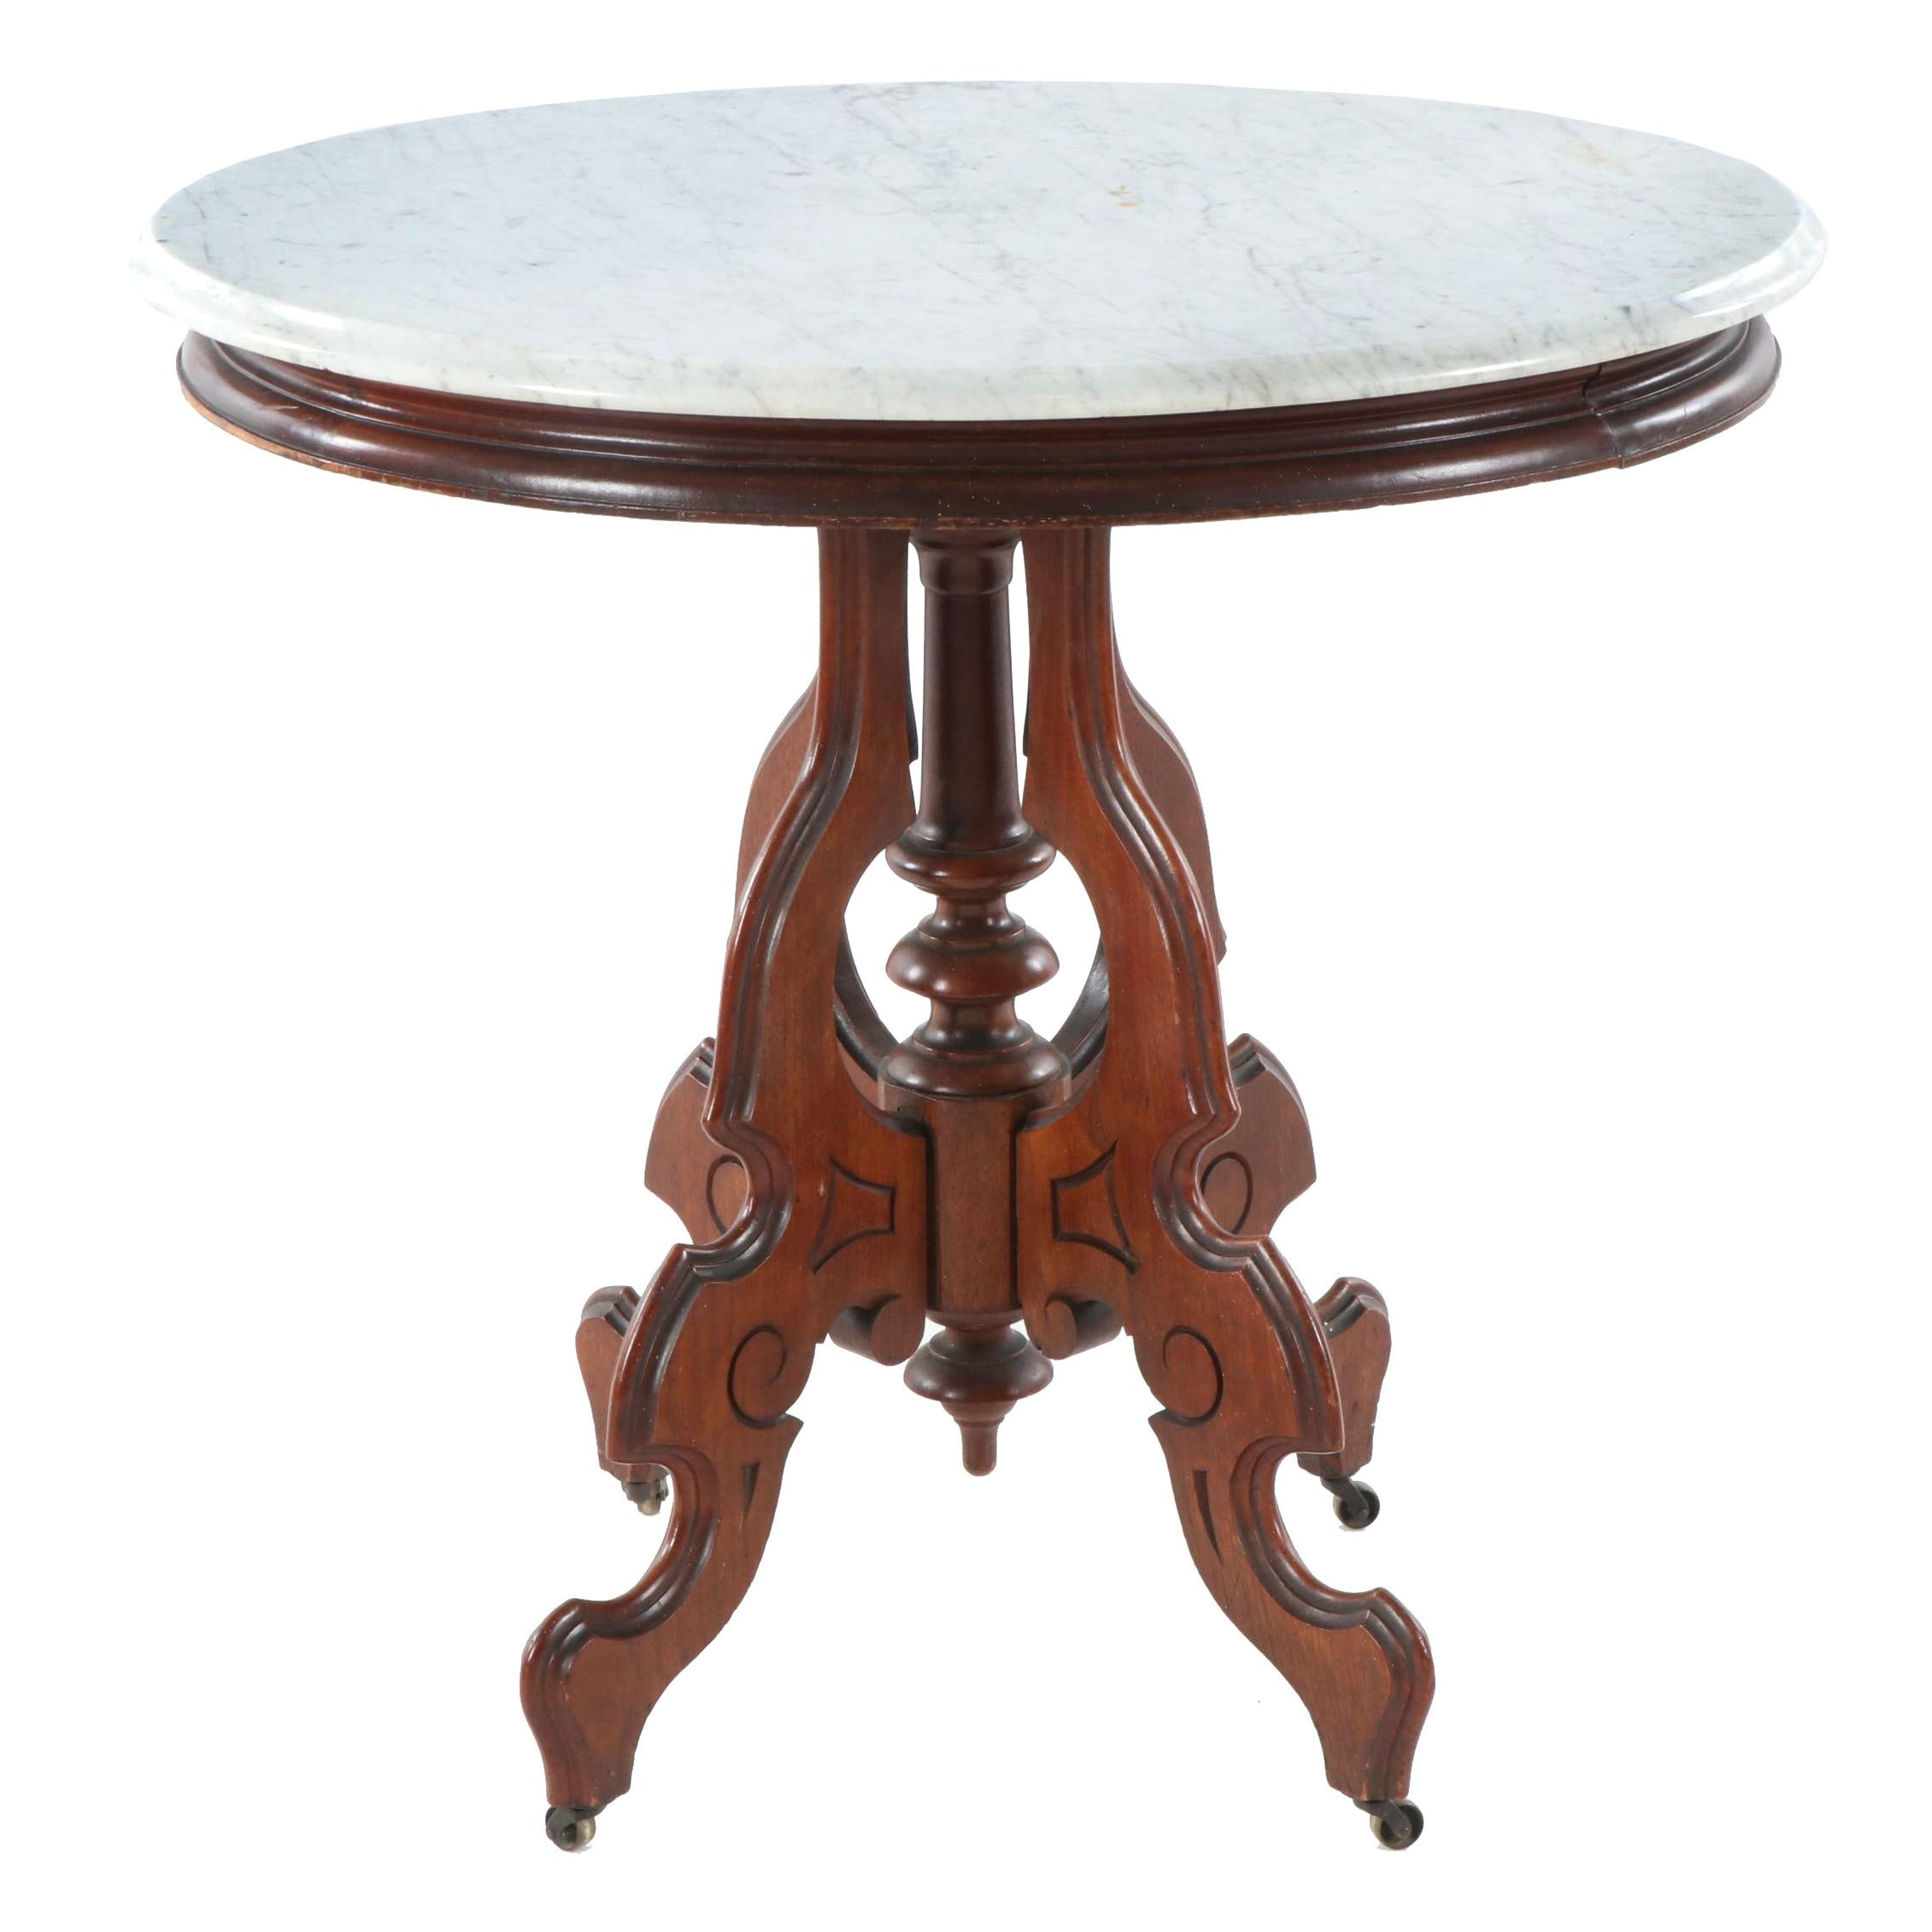 Victorian Style Mahogany and Marble Side Table, Early 20th Century